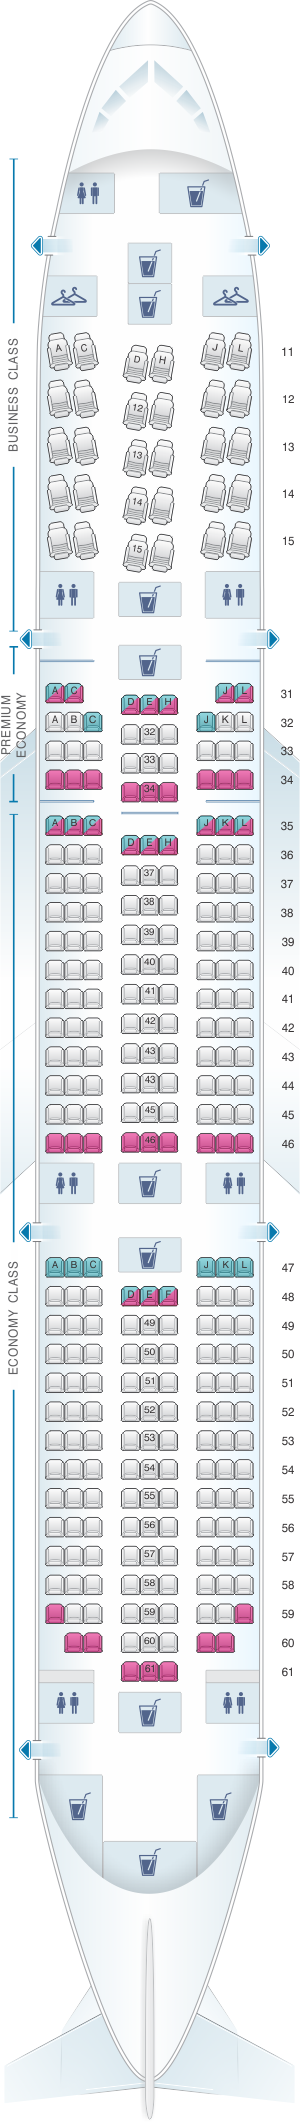 Seat map for Air China Boeing B787-9